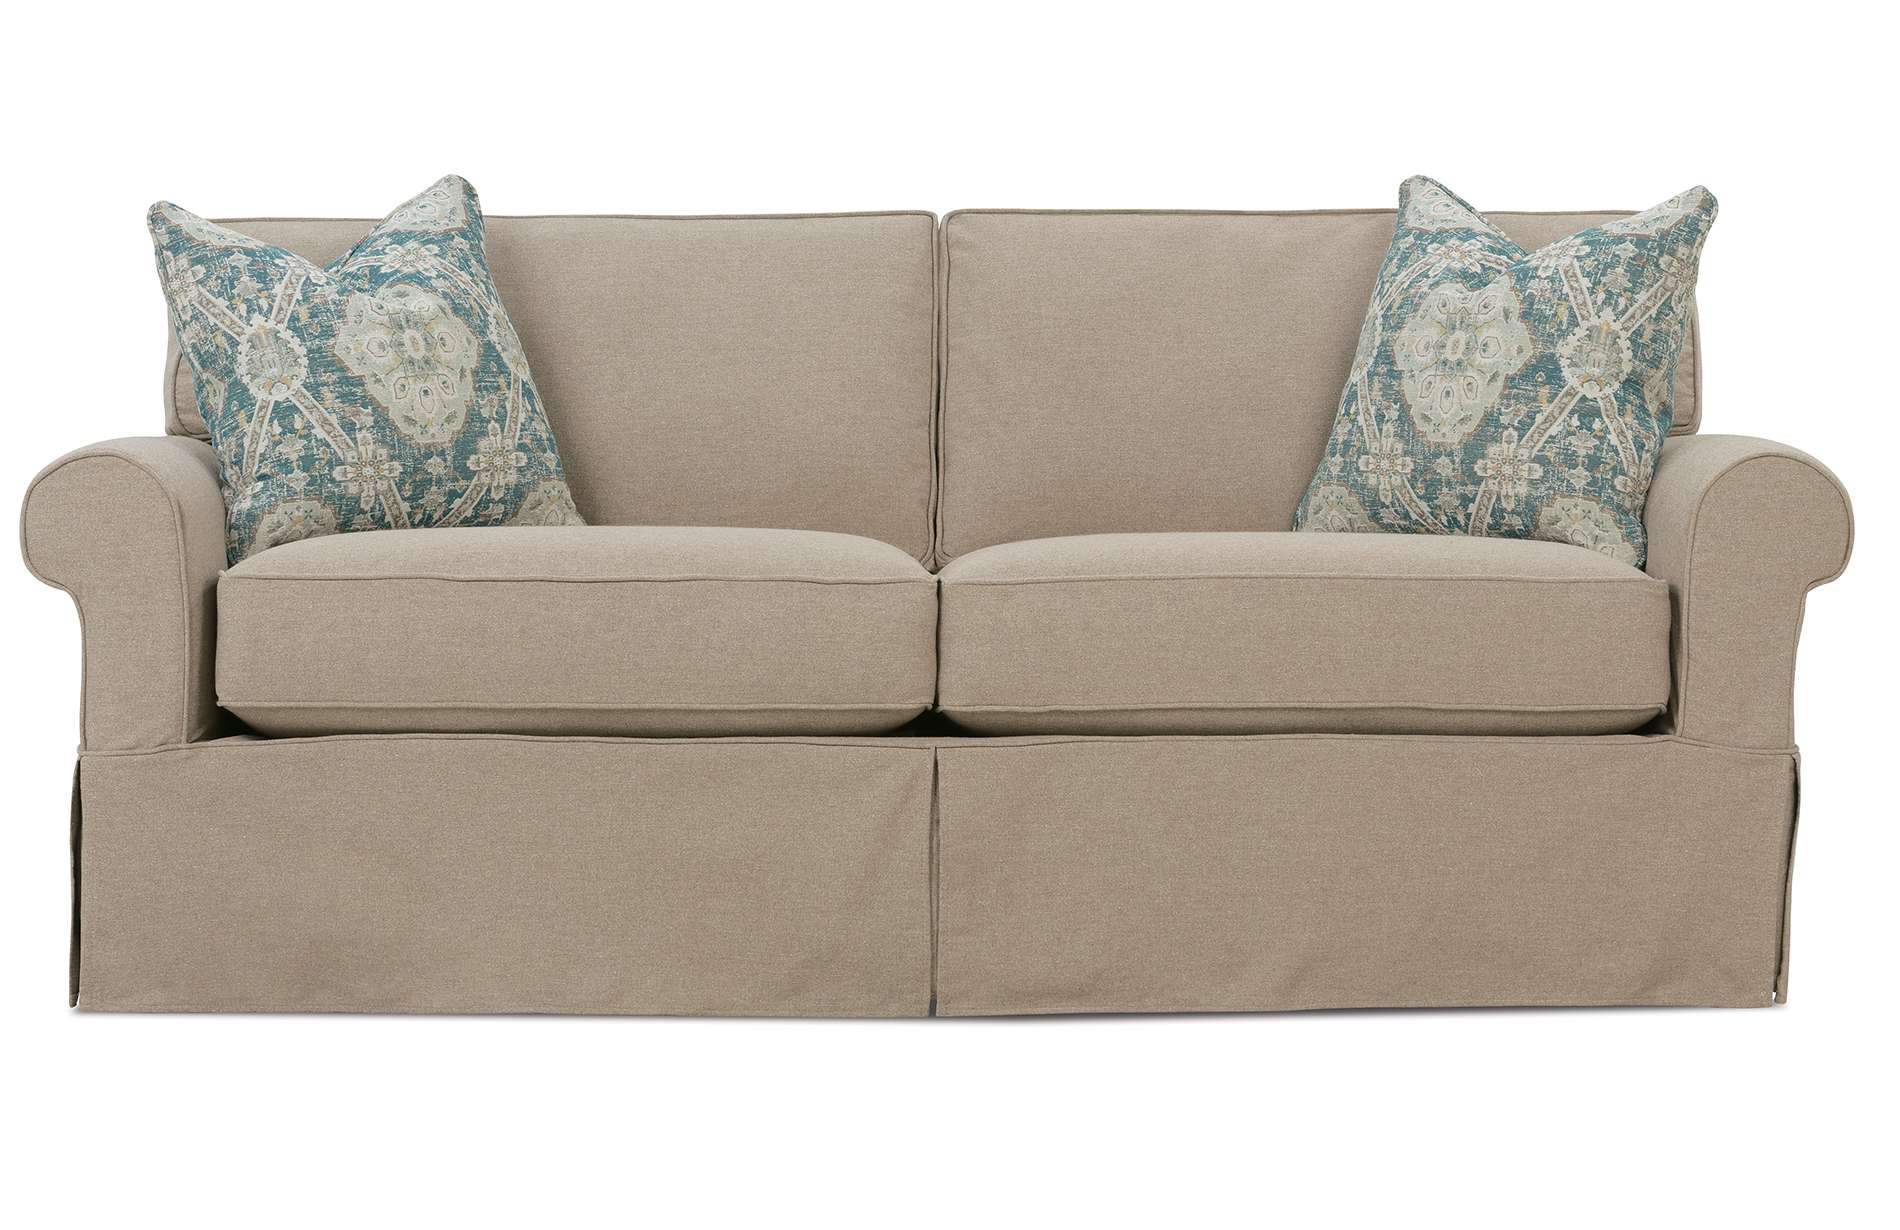 Nantucket Two Cushion Sofa